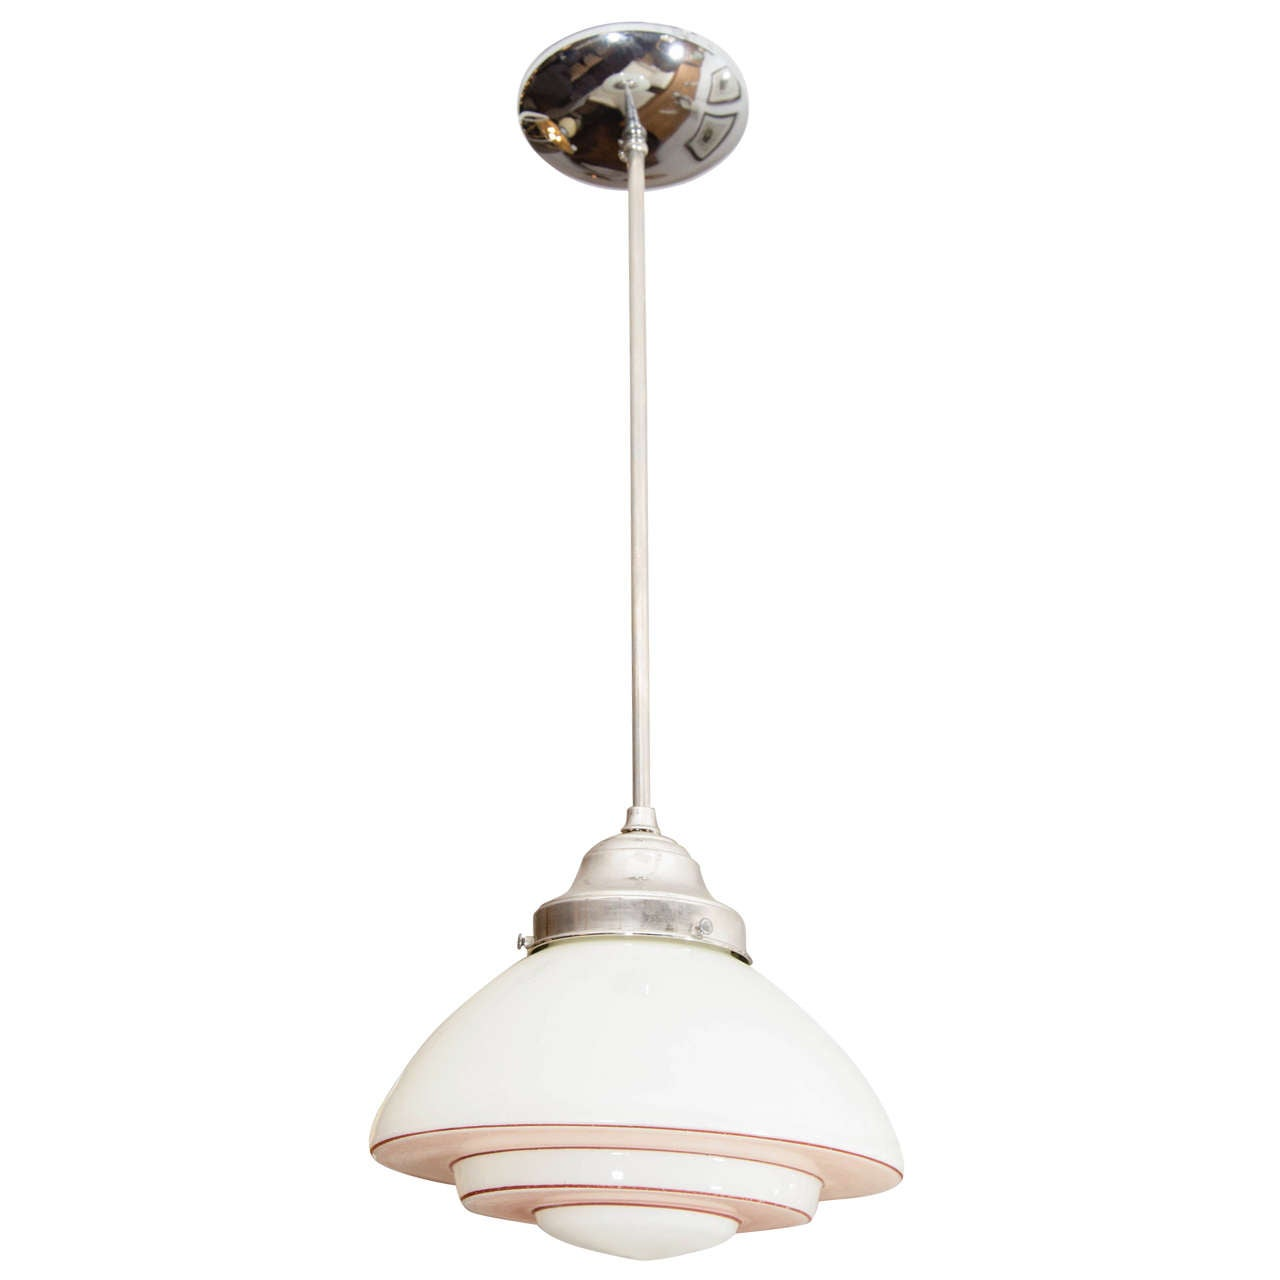 Pink and White Mid-Century Modern Light Fixture